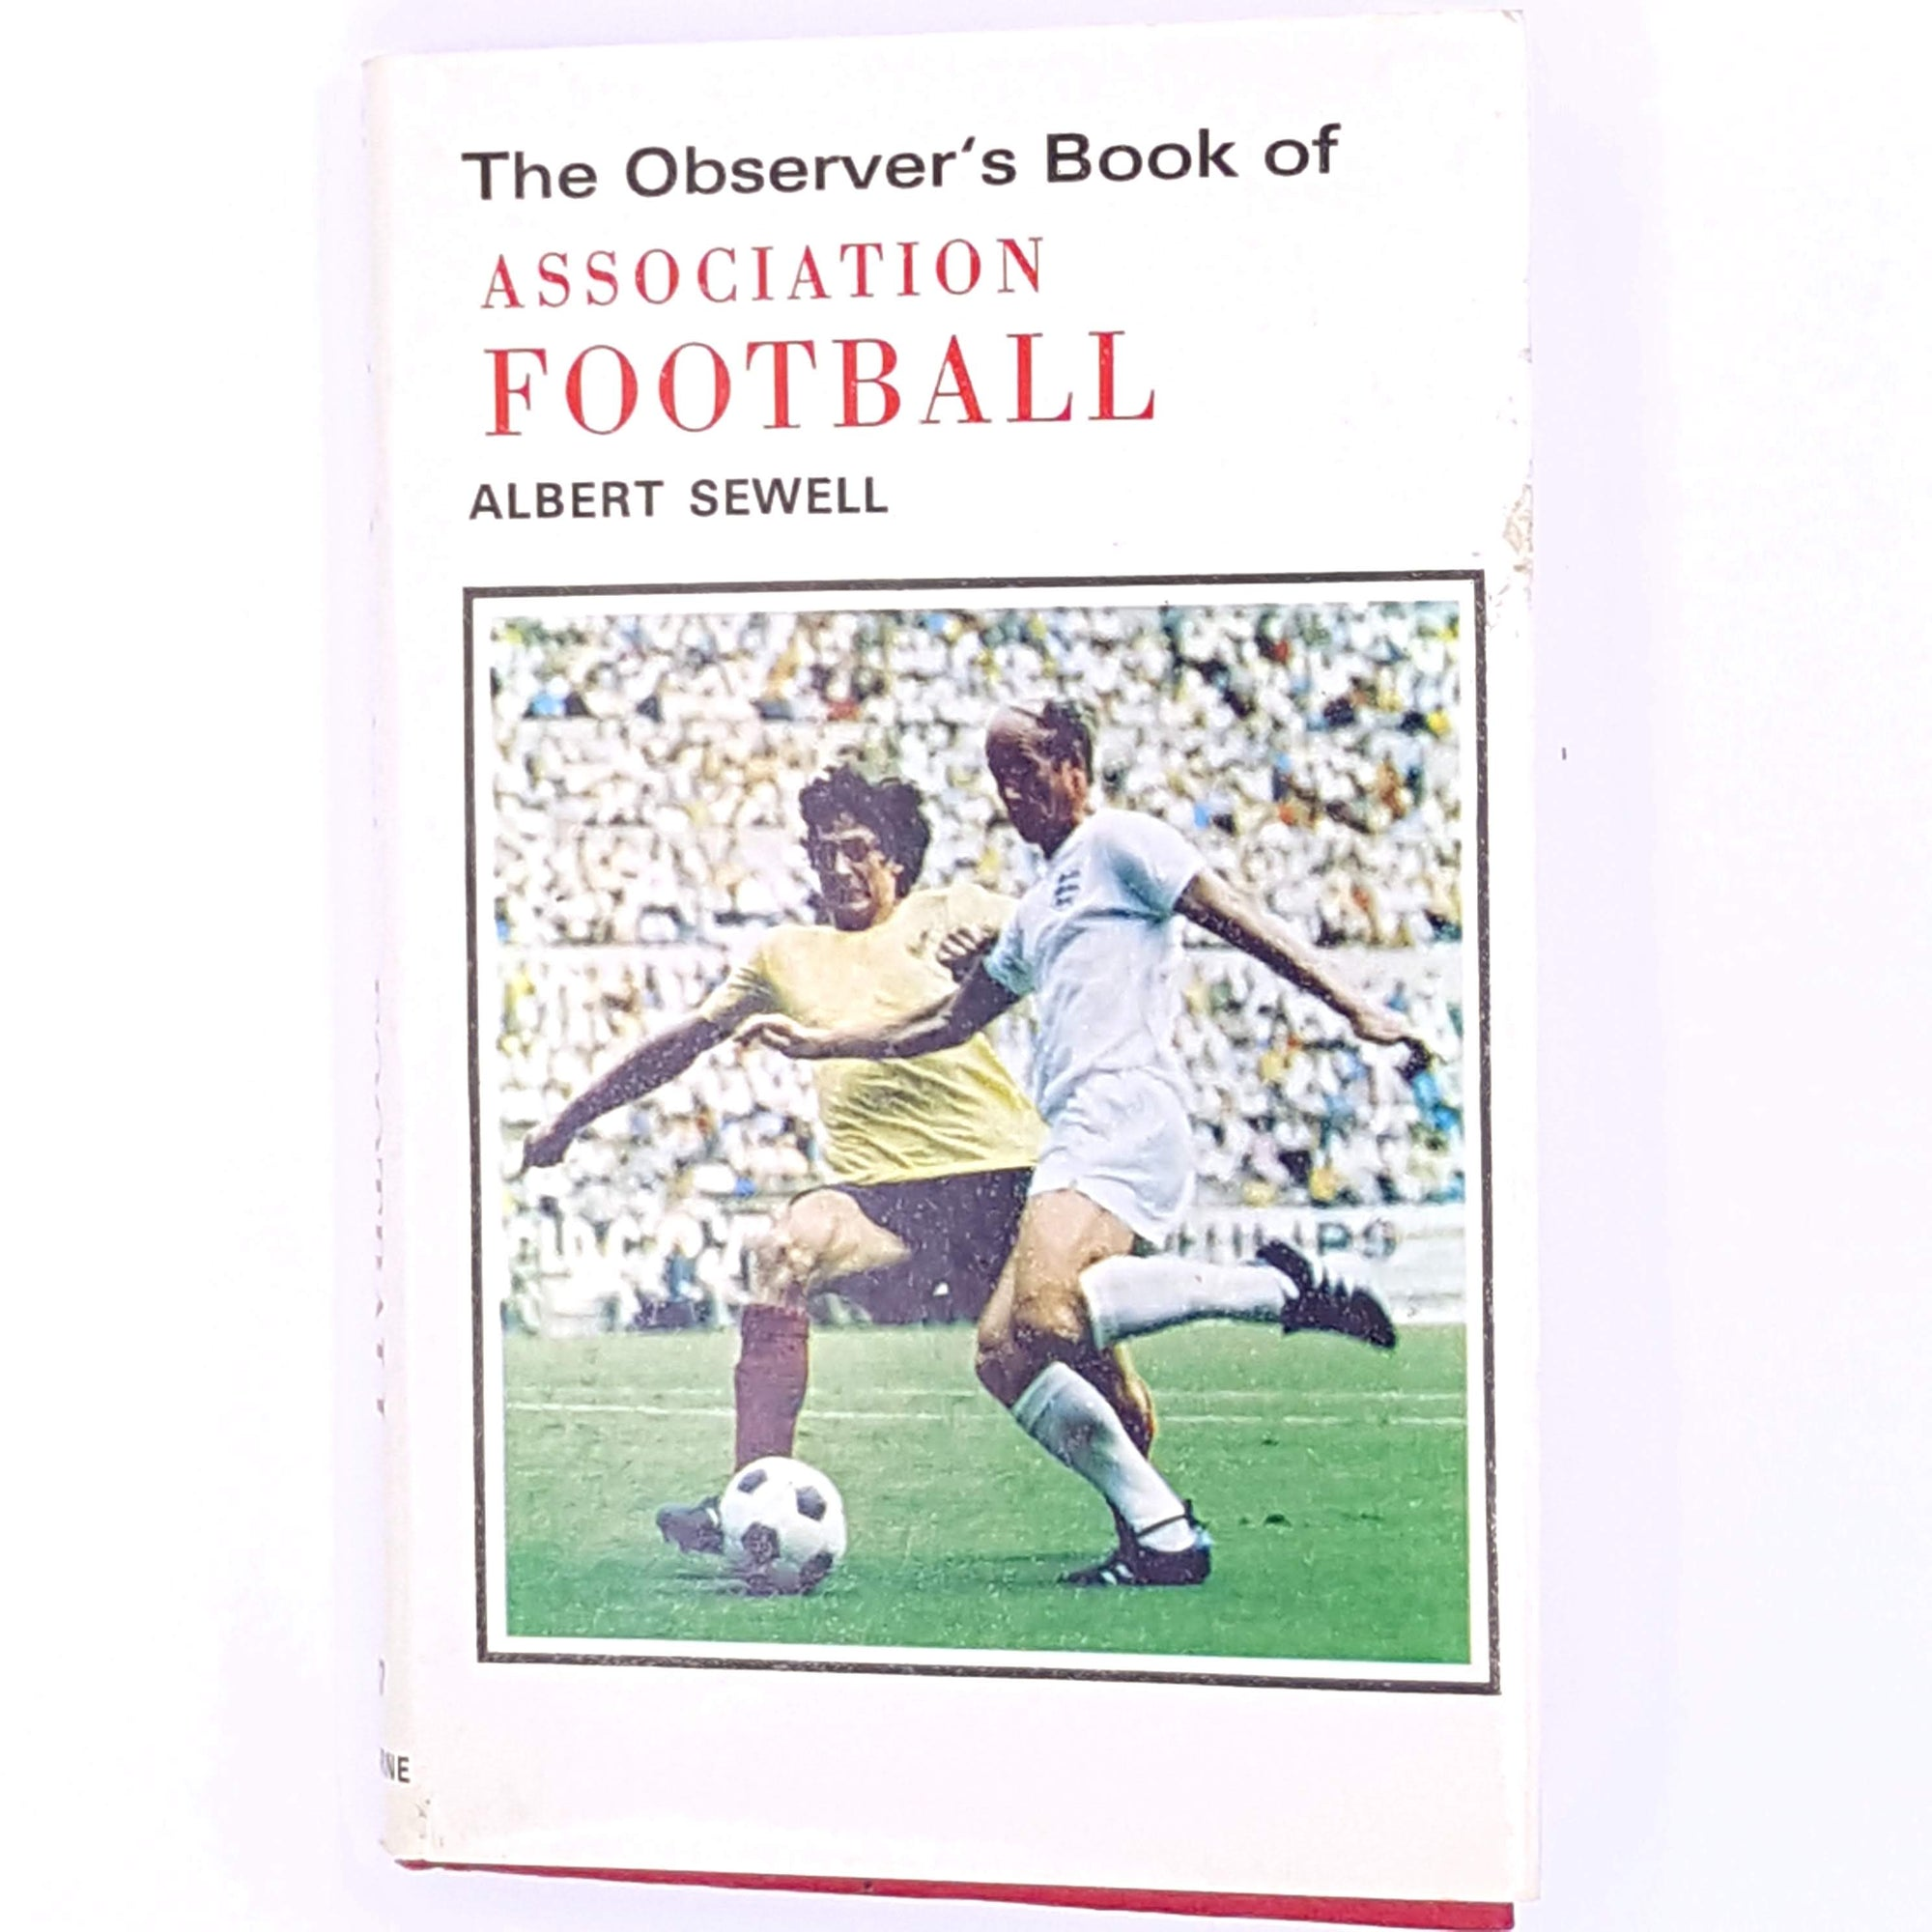 football-thrift-antique-country-house-library-pocket-vintage-classic-albert-sewell-guide-old-decorative-1972-observer-books-association-football